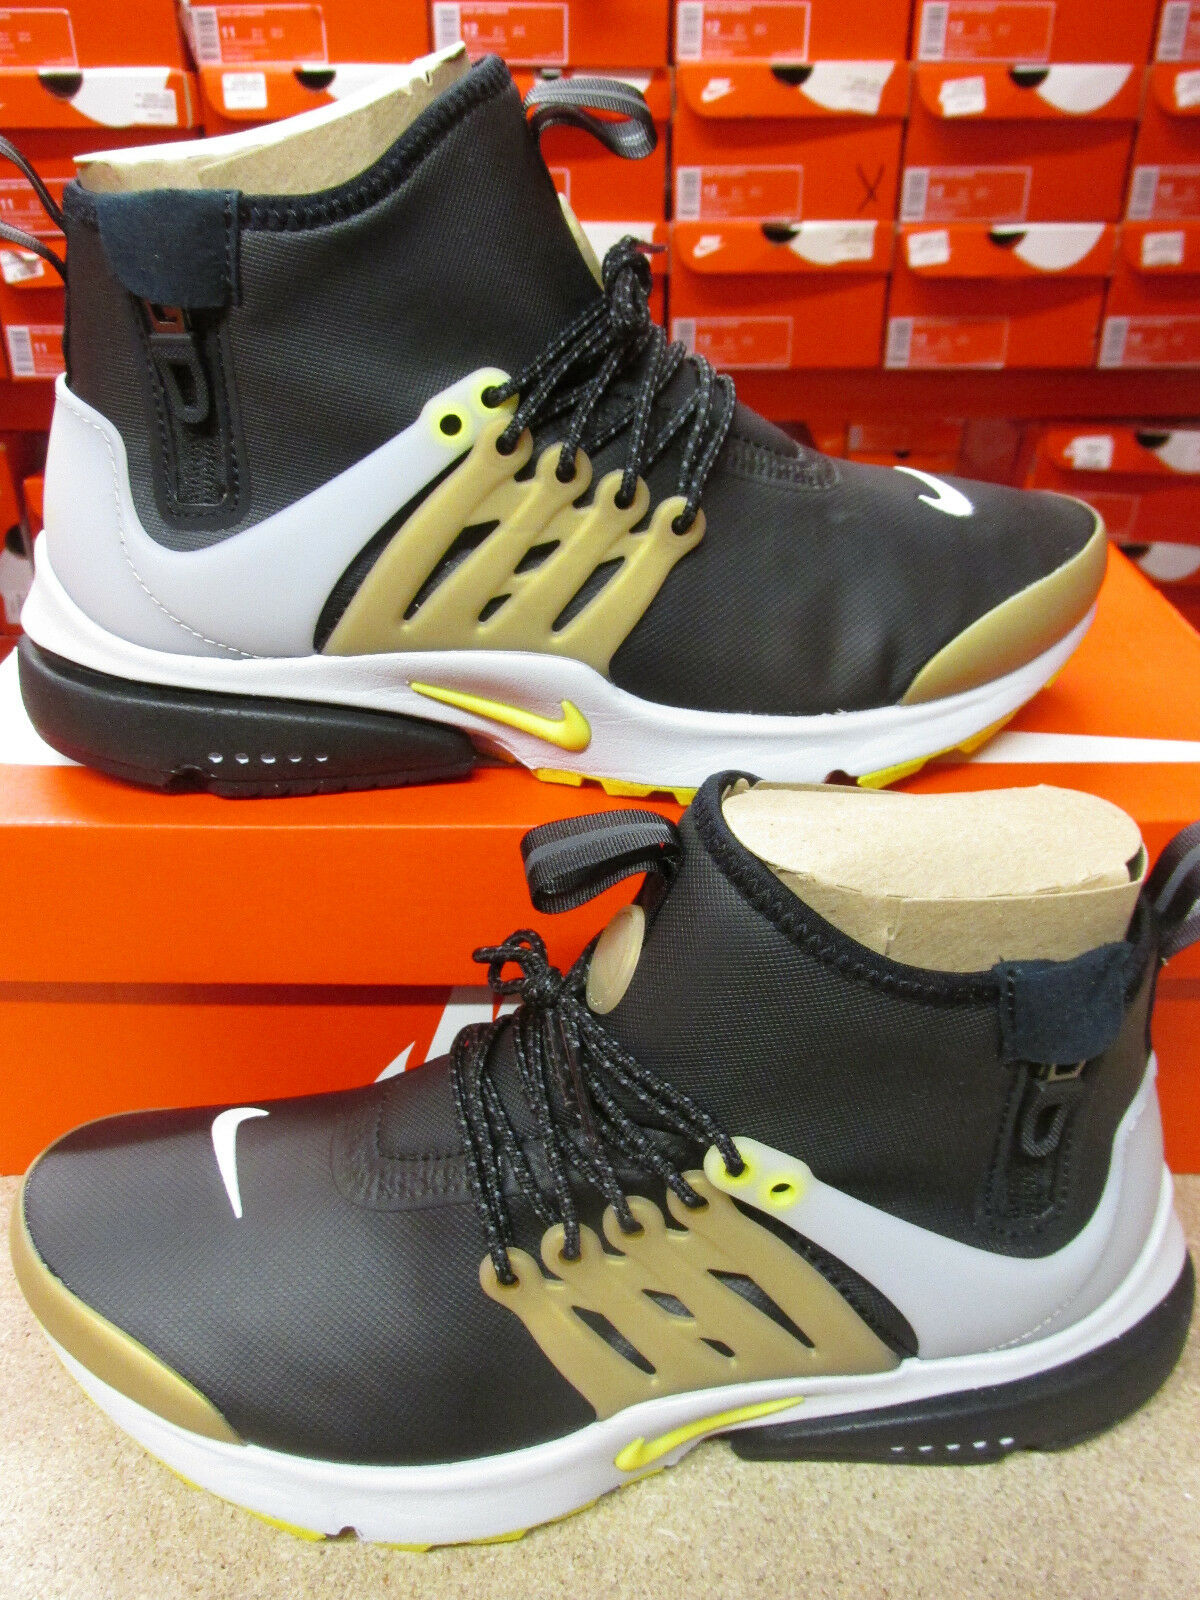 Nike Air 859524 Presto Mid Utility homme Hi Top Trainers 859524 Air 002 Baskets chaussures d32a8e